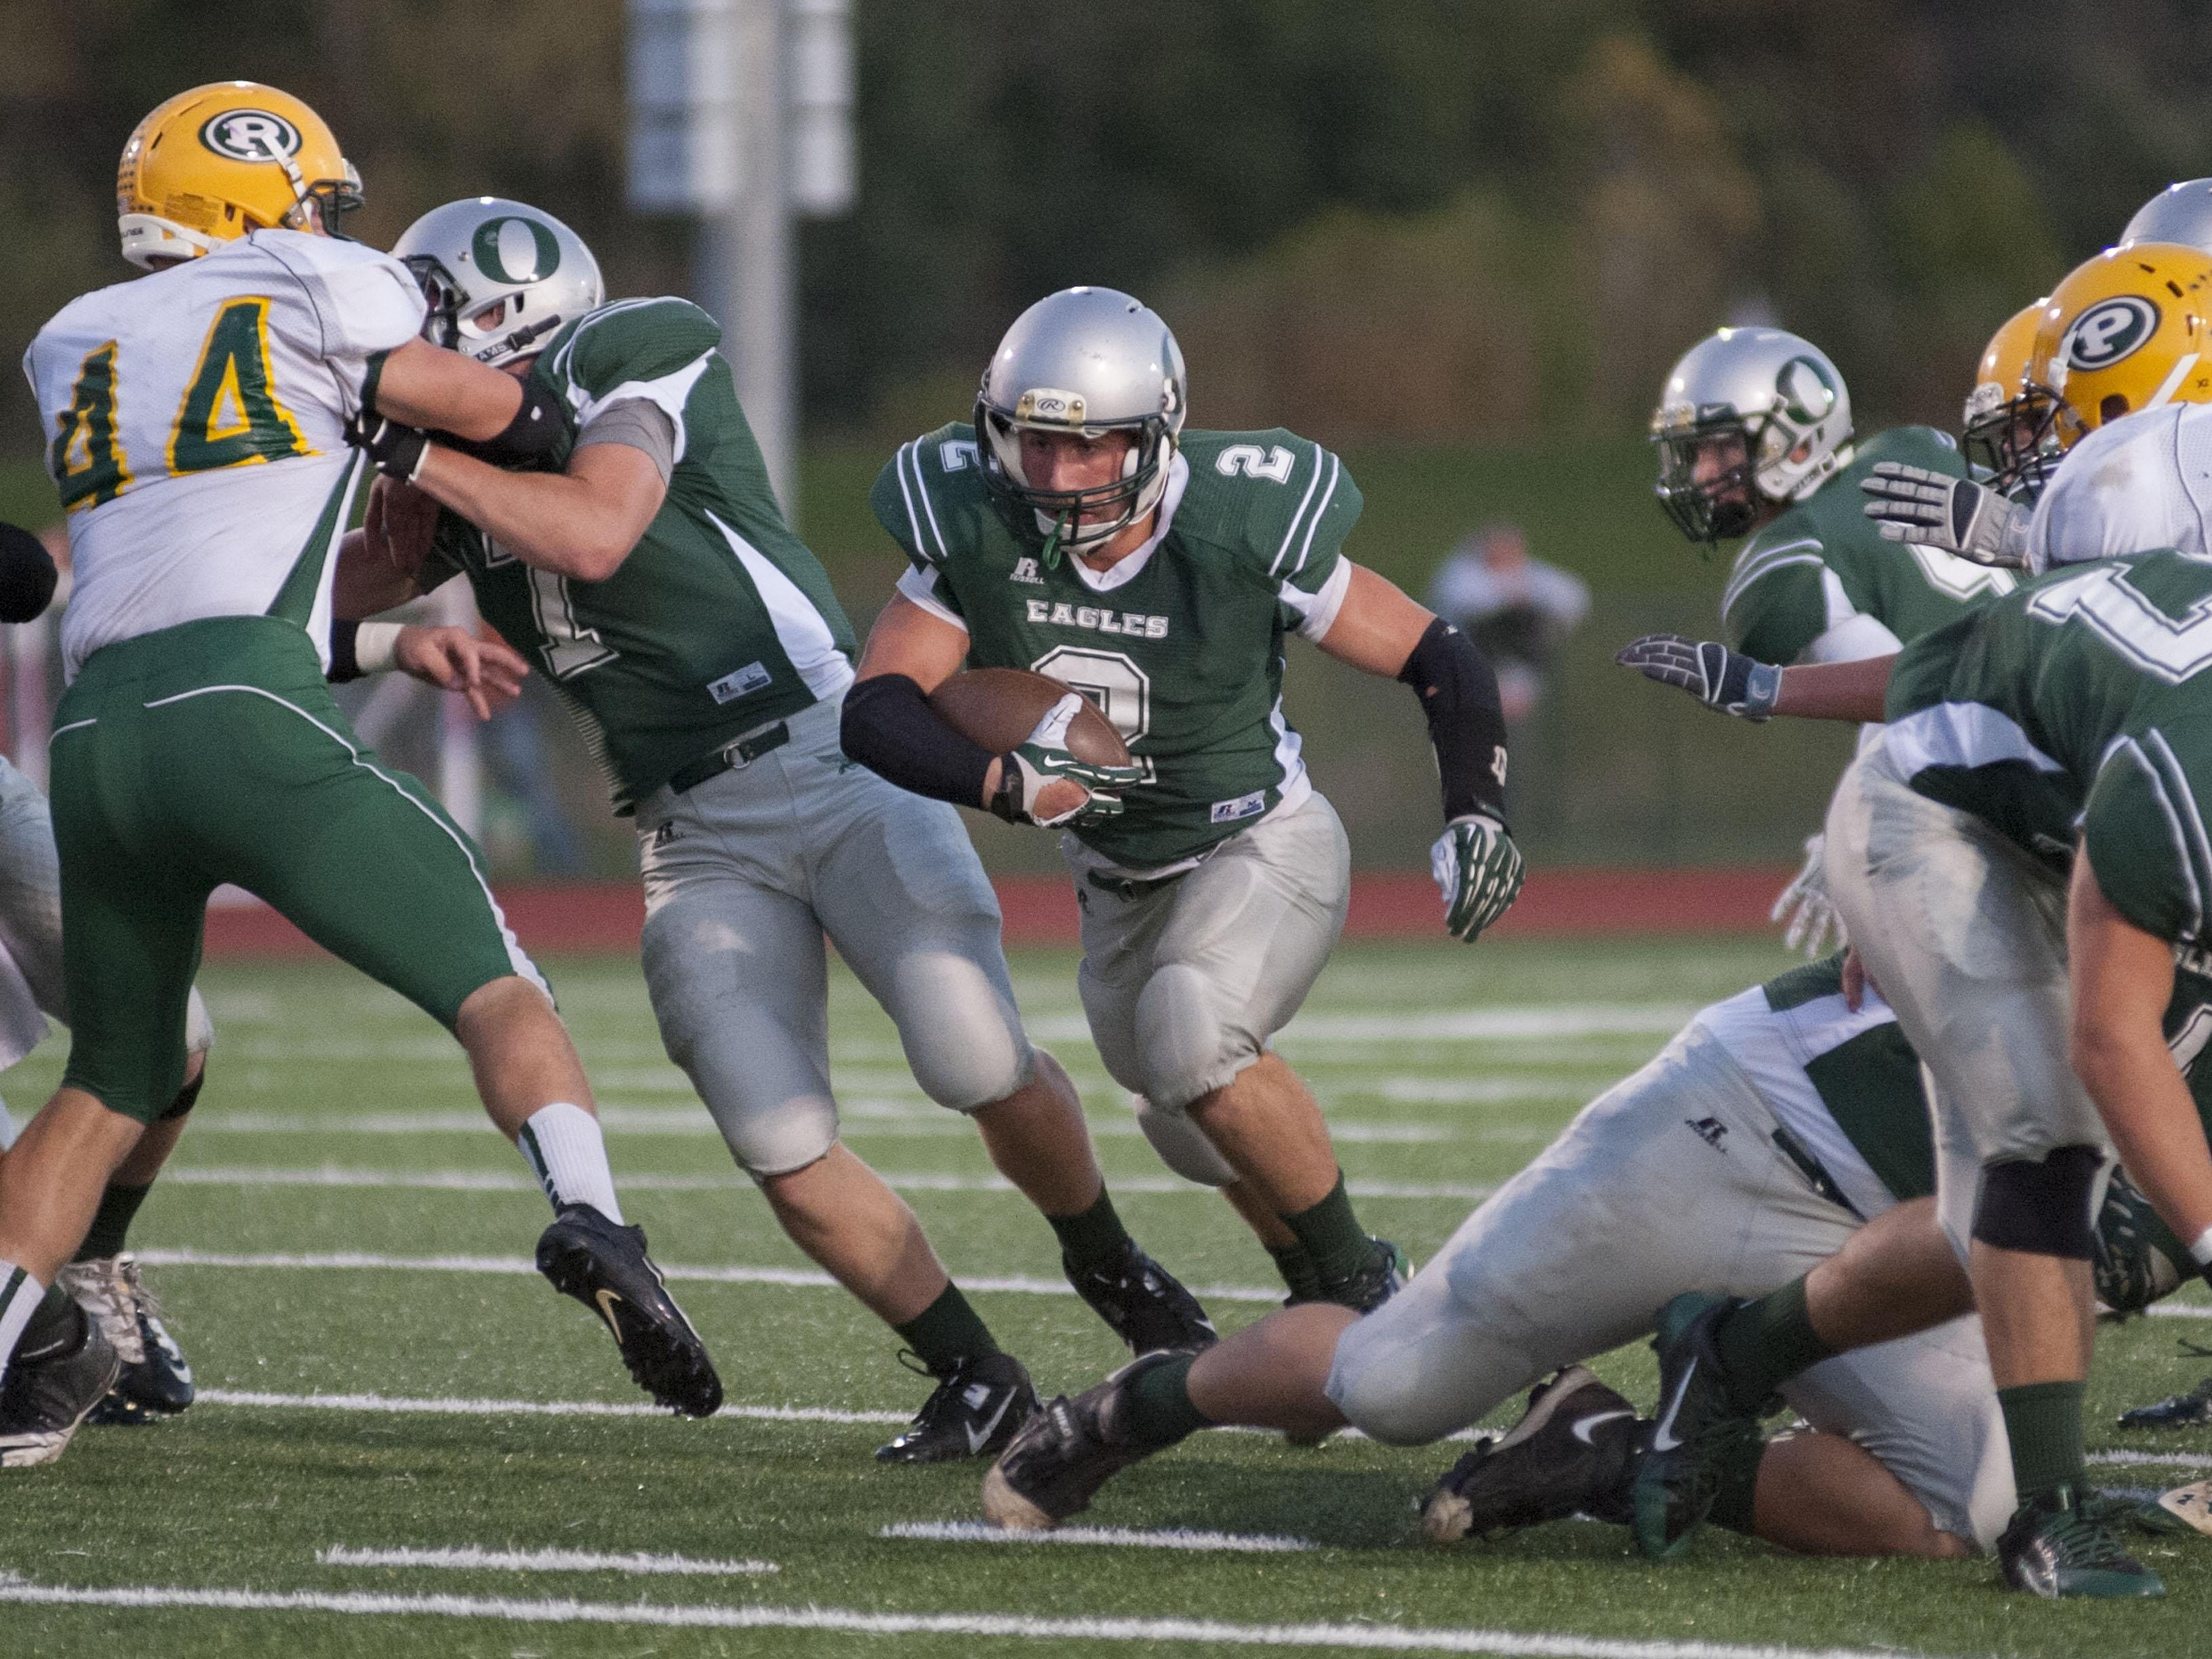 Olivet has high expections in 2015 after winning a league title last season.